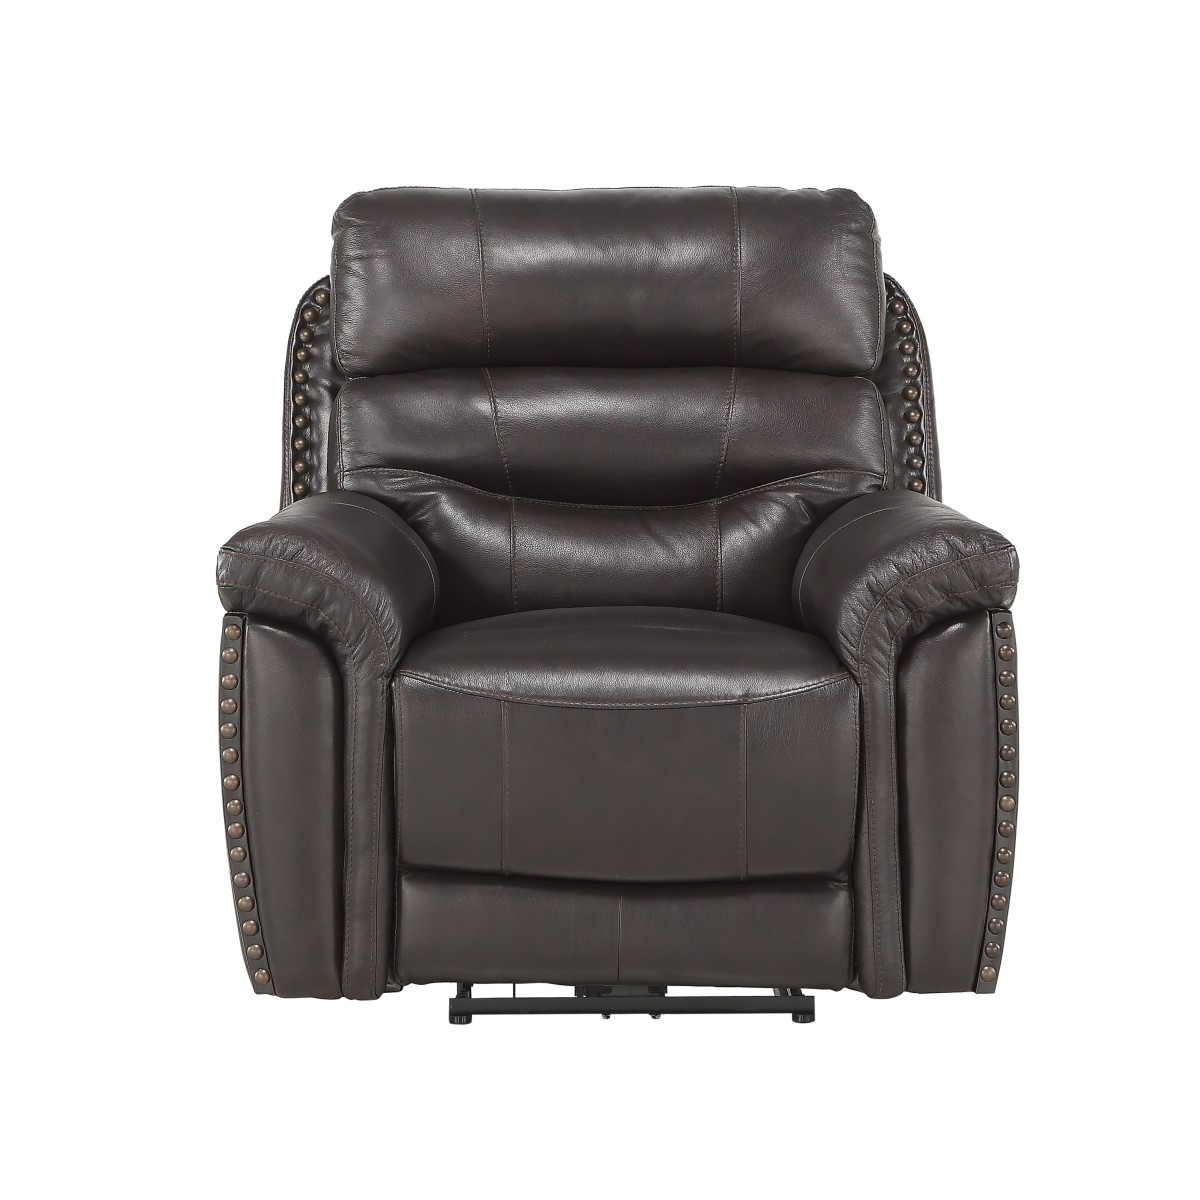 9527brw 1pwh Power Reclining Chair With Power Headrest And